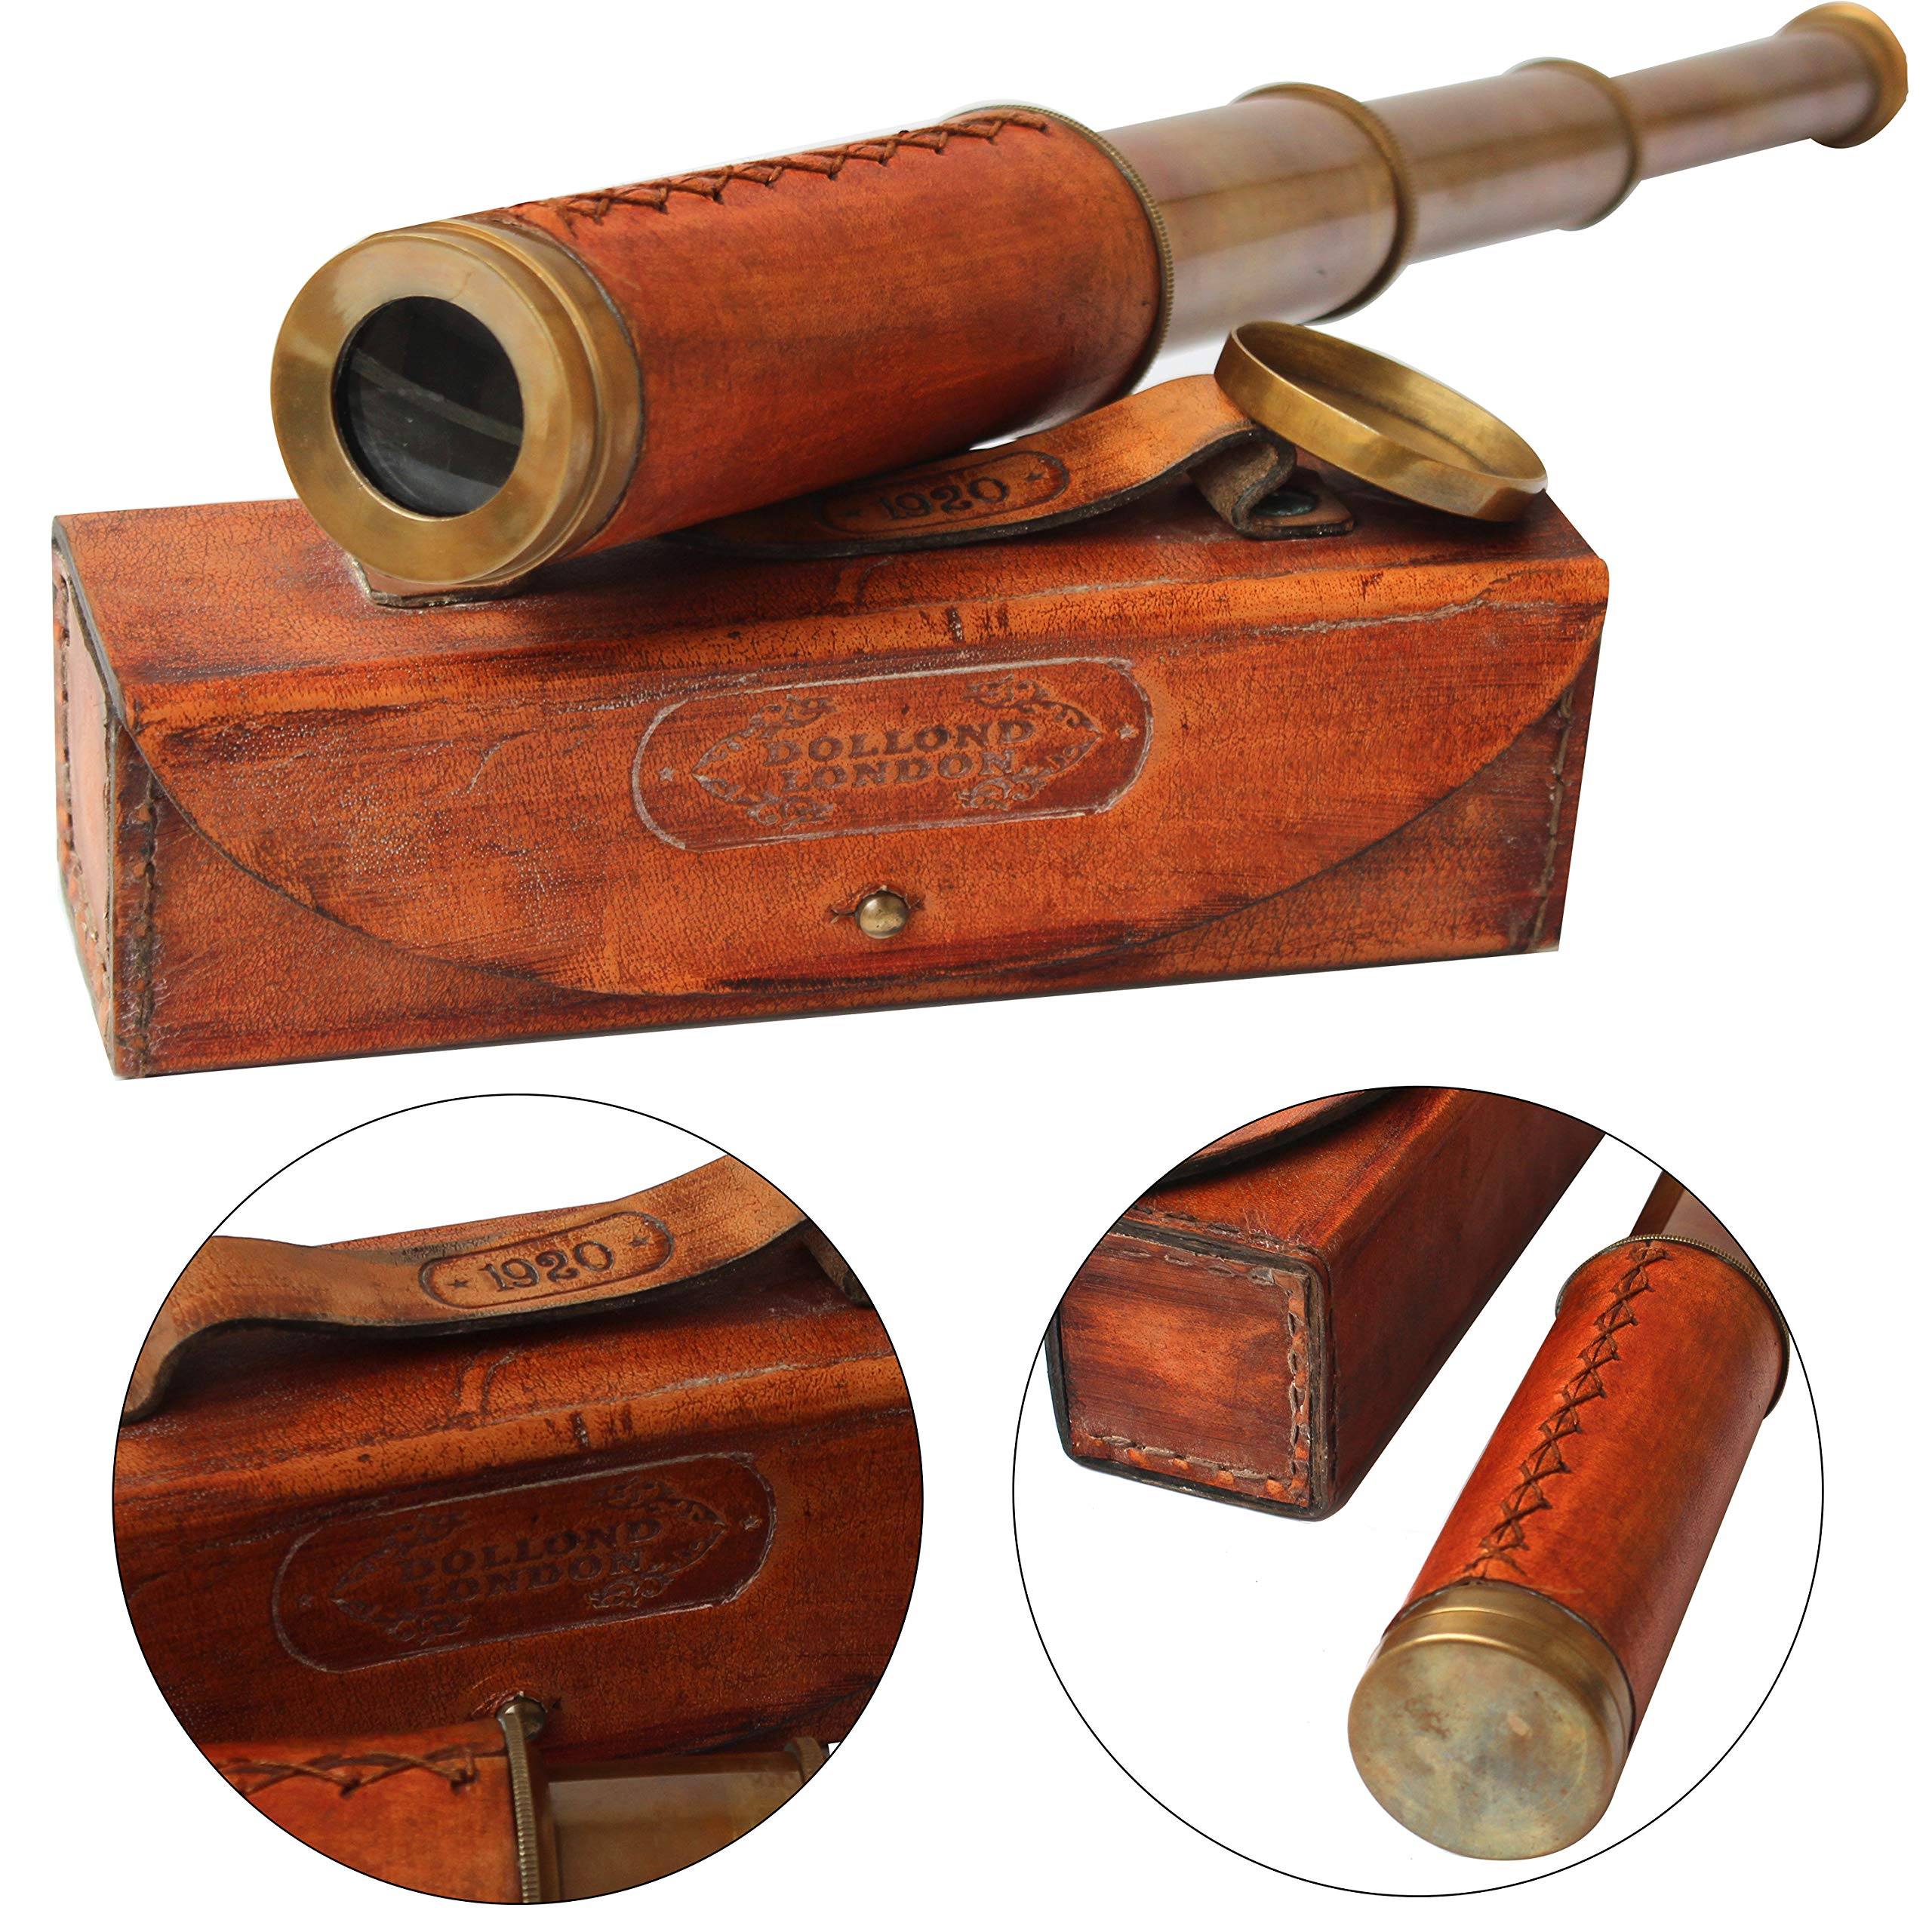 Orange Leather Marine Box Telescope Dollond London 1920 Era Maritime Vintage Functional Spyglass Sailor Instrument - Handmade Gifts Article by Collectibles Buy